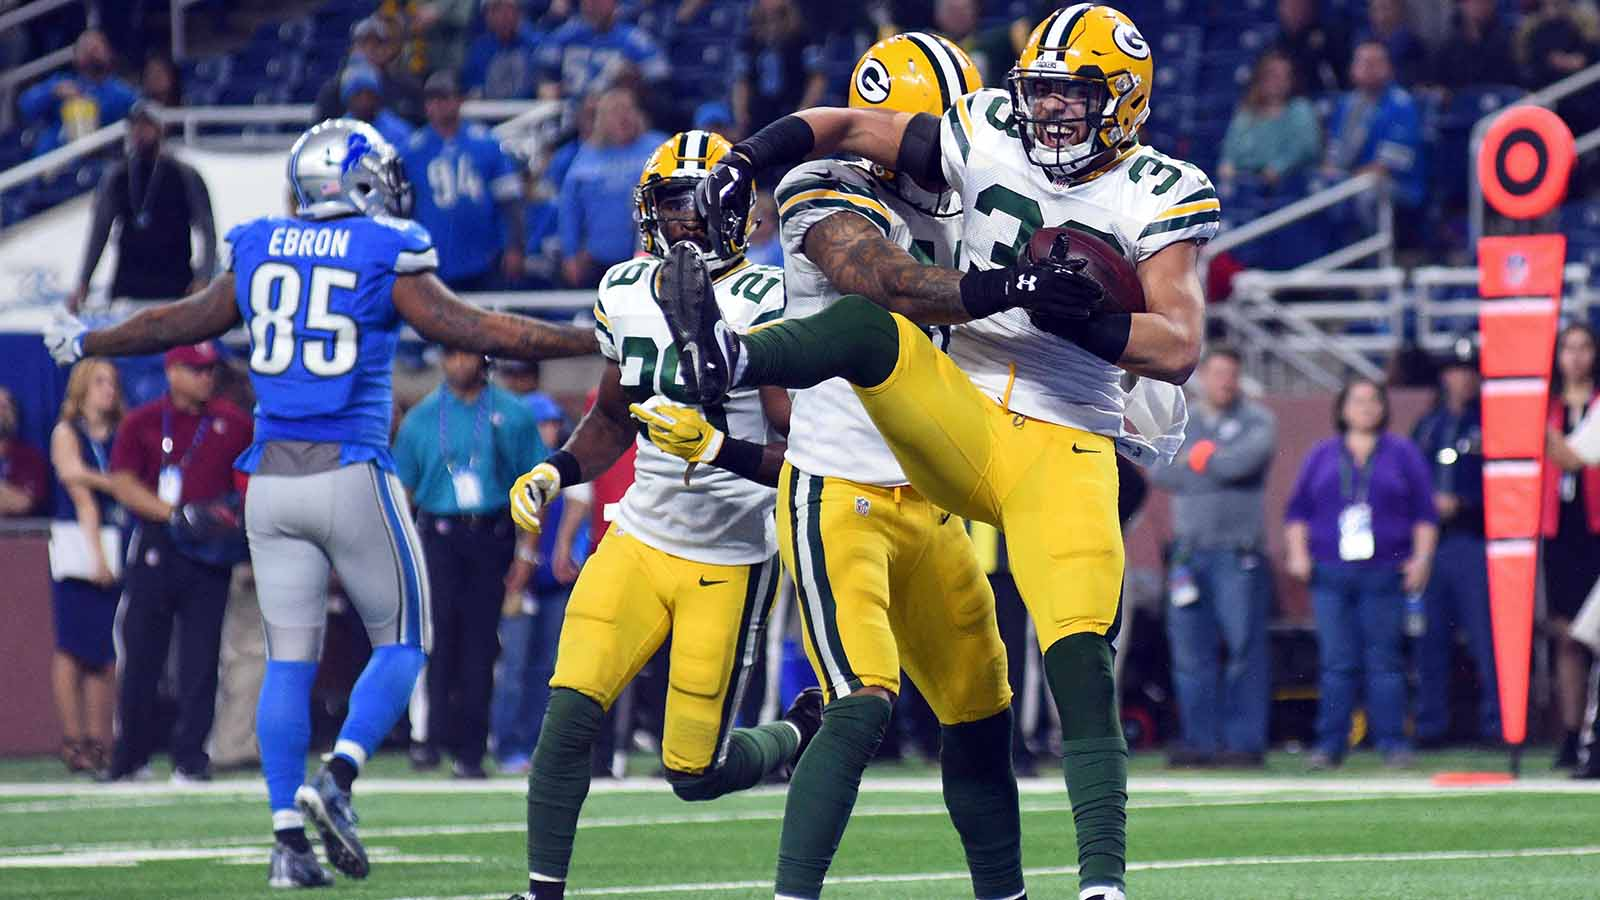 Green Bay's defense withstands more injuries as playoffs await